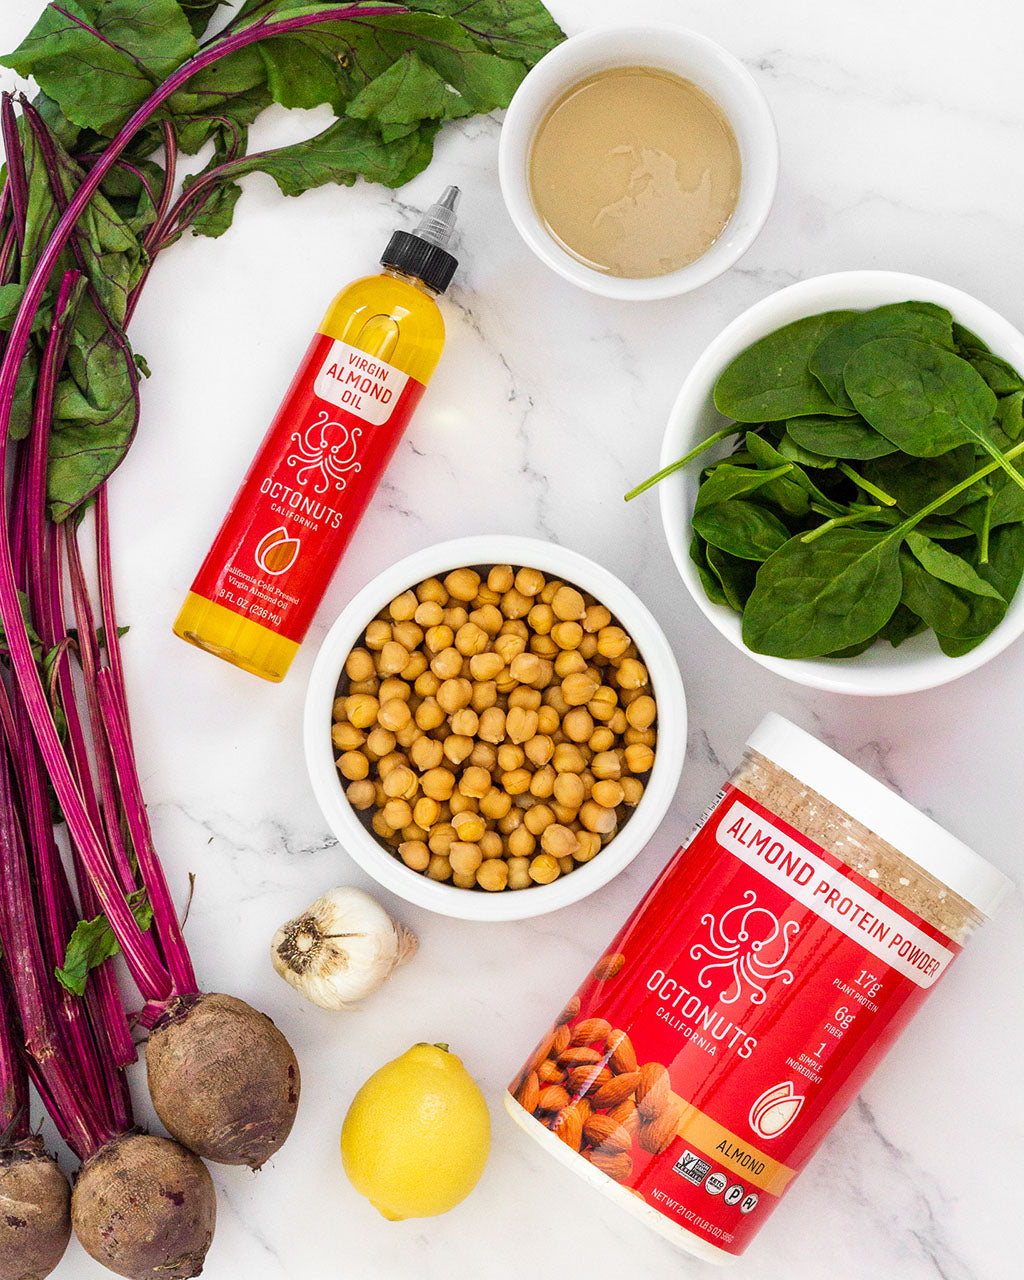 Ingredients for plain, beet, and spinach hummus with Octonuts Almond Oil